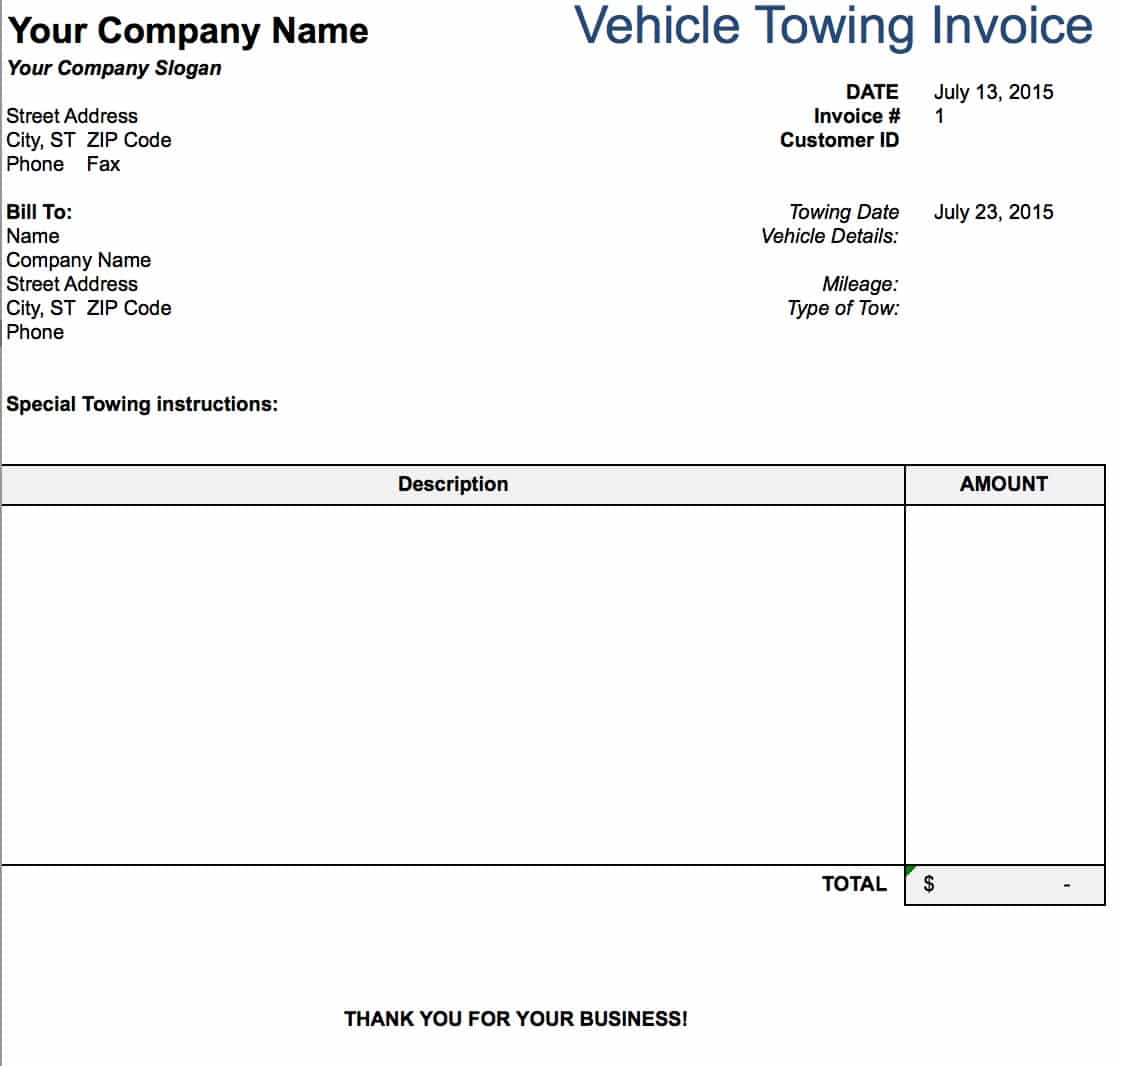 Free Tow Service Invoice Template Excel PDF Word Doc - Microsoft excel invoice template free download for service business